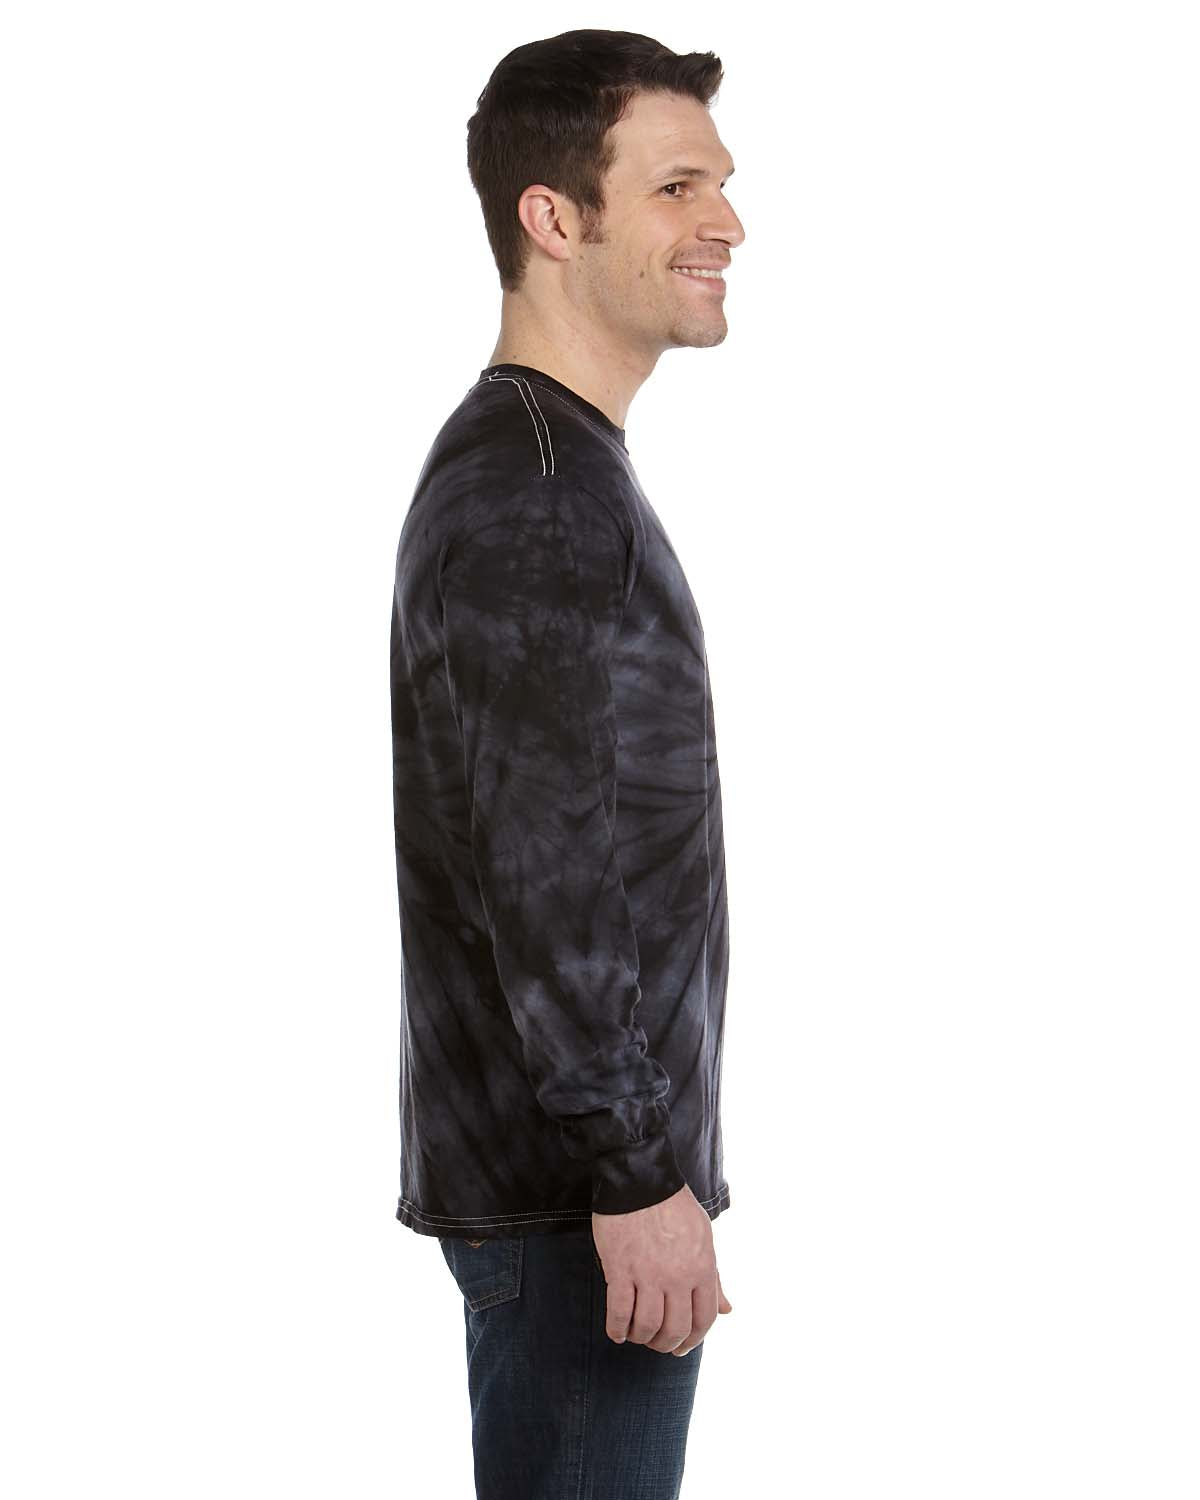 Tie-Dye CD2000 Mens Long Sleeve Crewneck T-Shirt Black Side